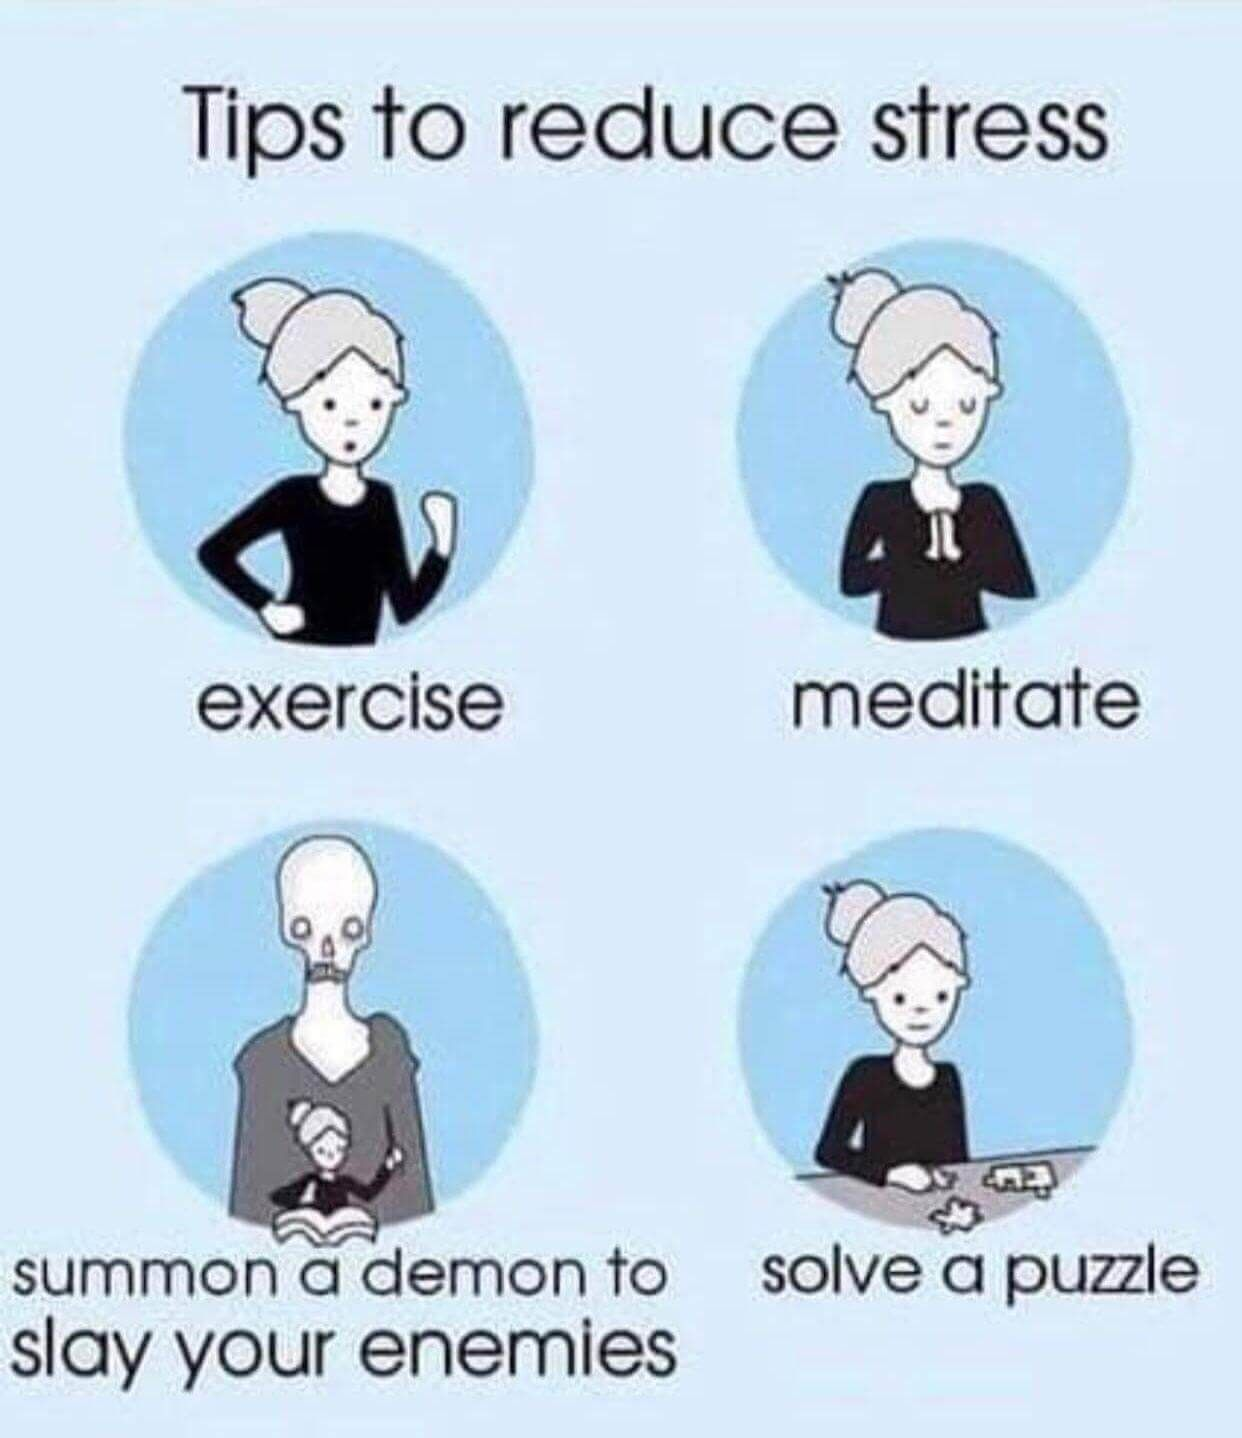 How To Reduce Stress Funny Image Viral Fun Quotes Funny Stress Funny Funny Relationship Quotes